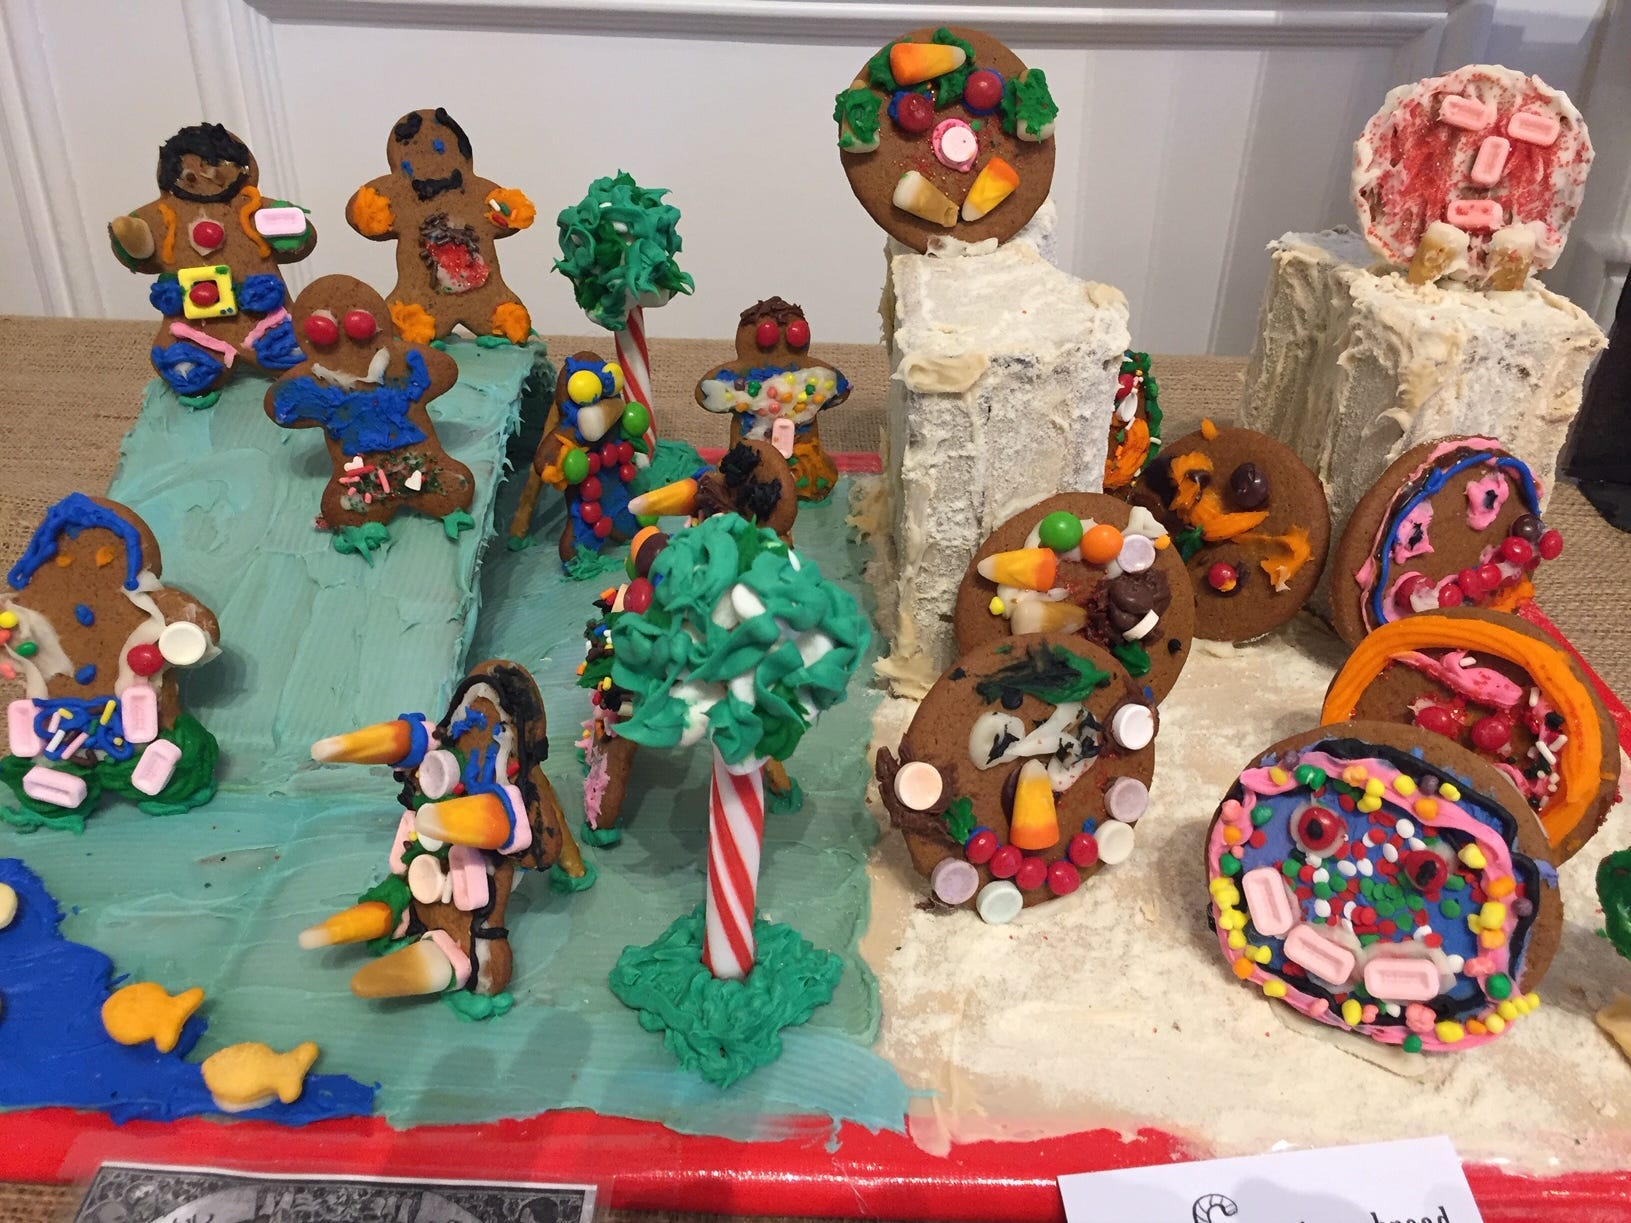 """Runaway Tortillas and Gingerbread Men"" by FN Brown ESL class, K-4, Verona, at the 2018 Gingerbread Wonderland at the Frelinghuysen Arboretum. School category."